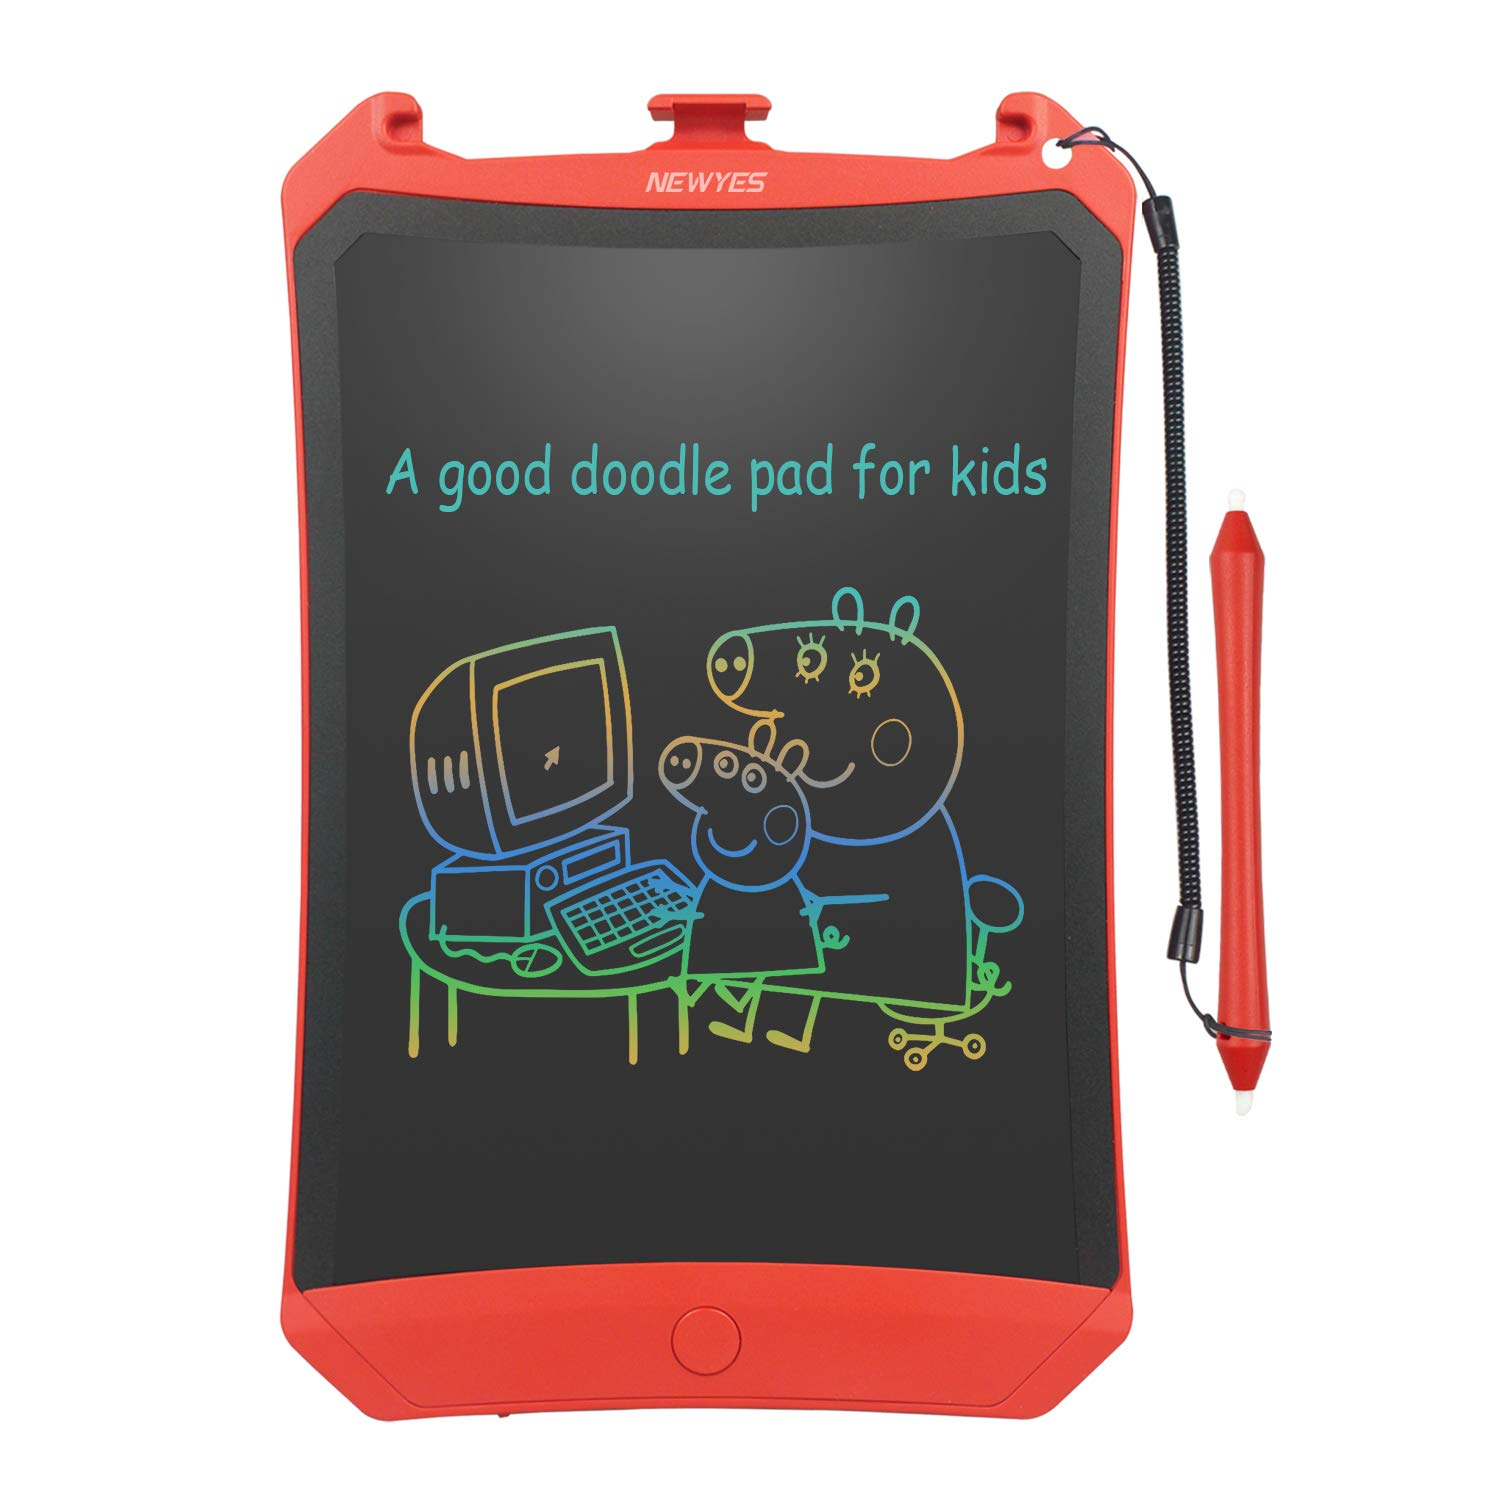 NEWYES Colorful Robot pad 8.5 Inch LCD Writing Tablet Electronic Doodle Pads Drawing Board Gifts for Kids (Colorful Version)